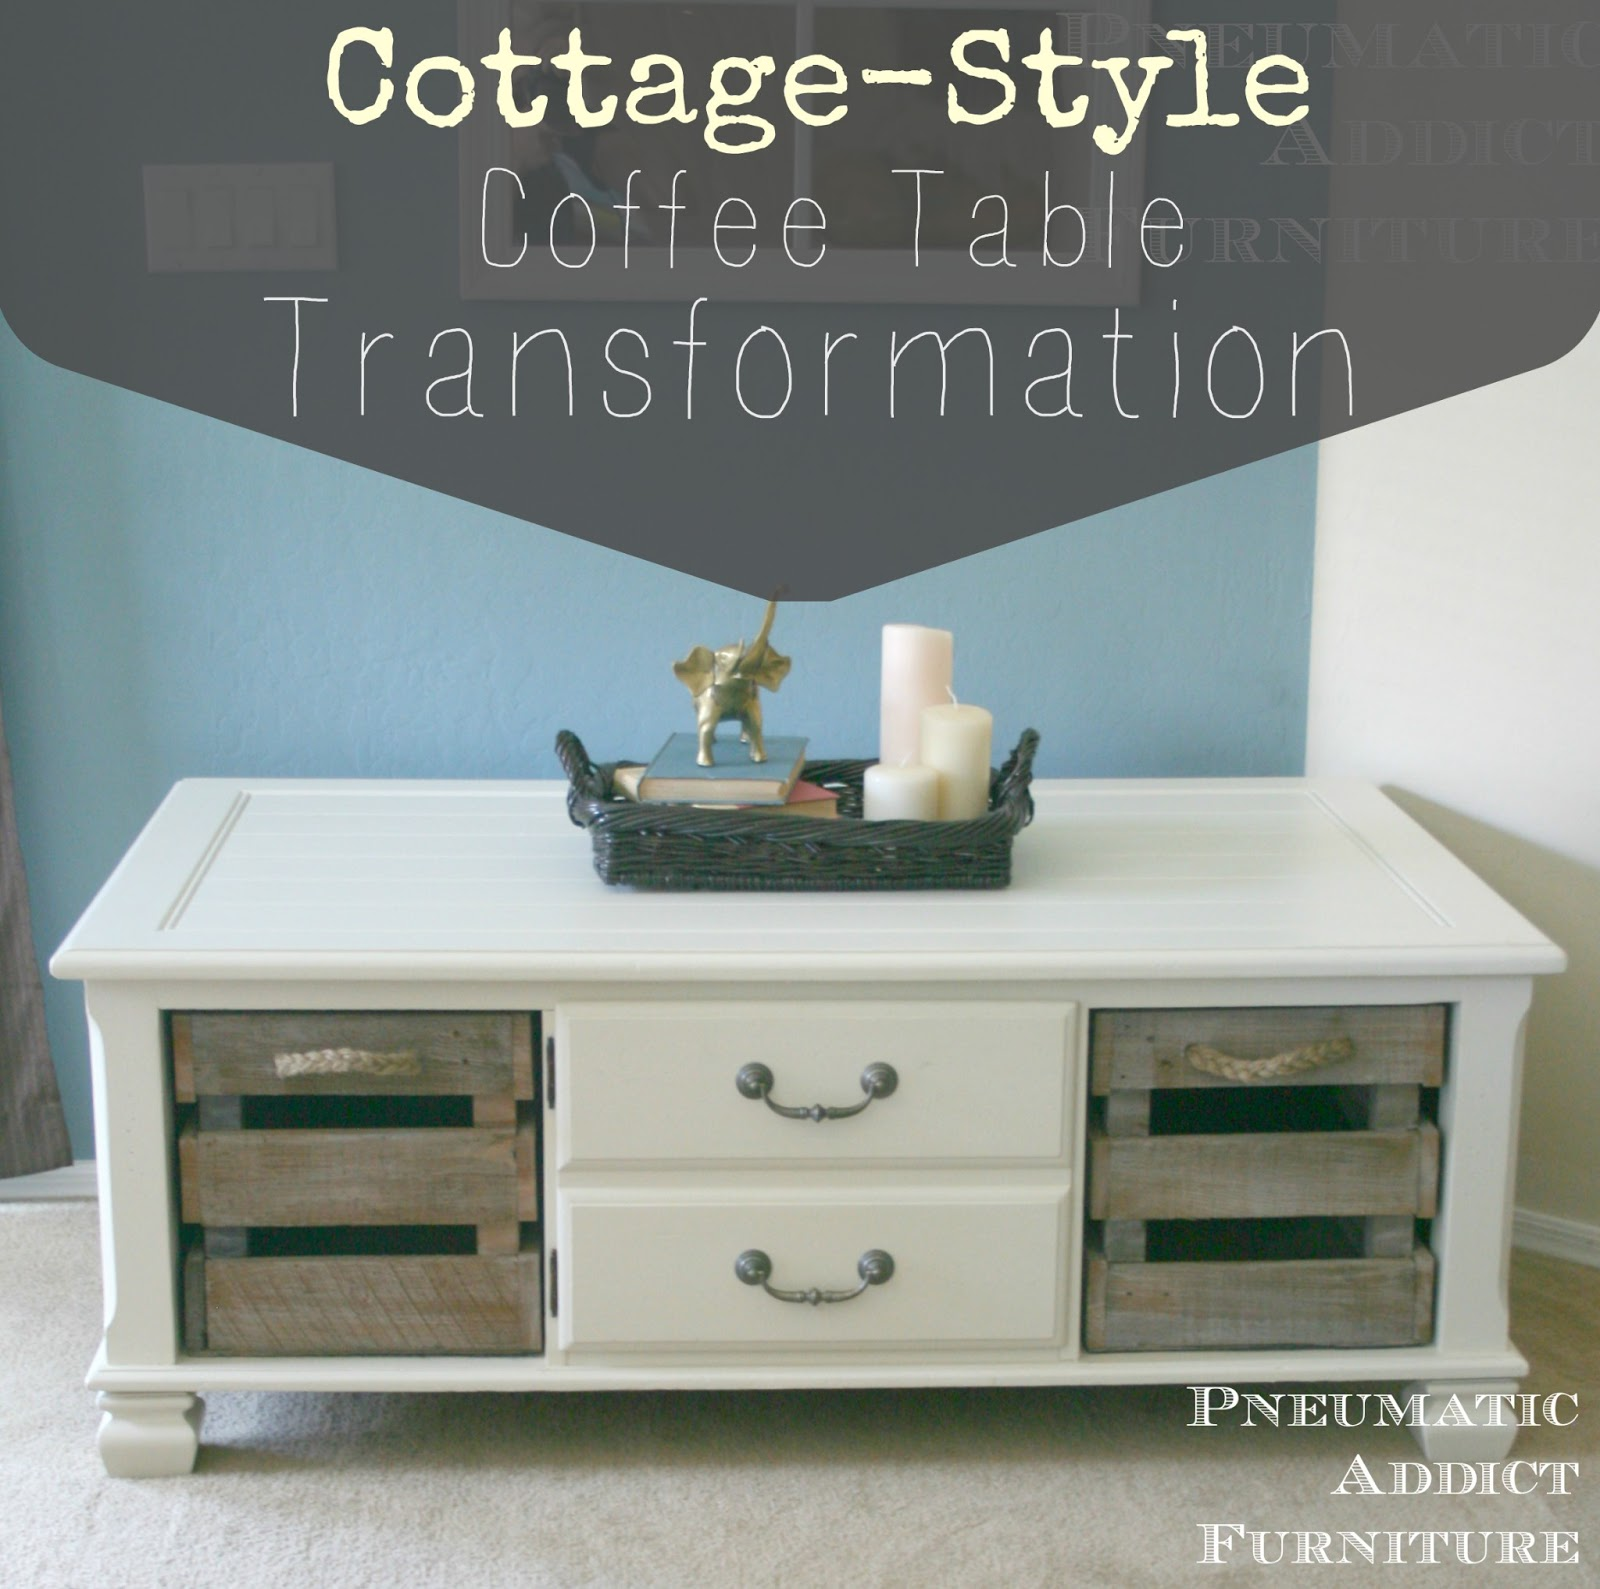 pneumatic addict cottage style coffee table transformation. Black Bedroom Furniture Sets. Home Design Ideas